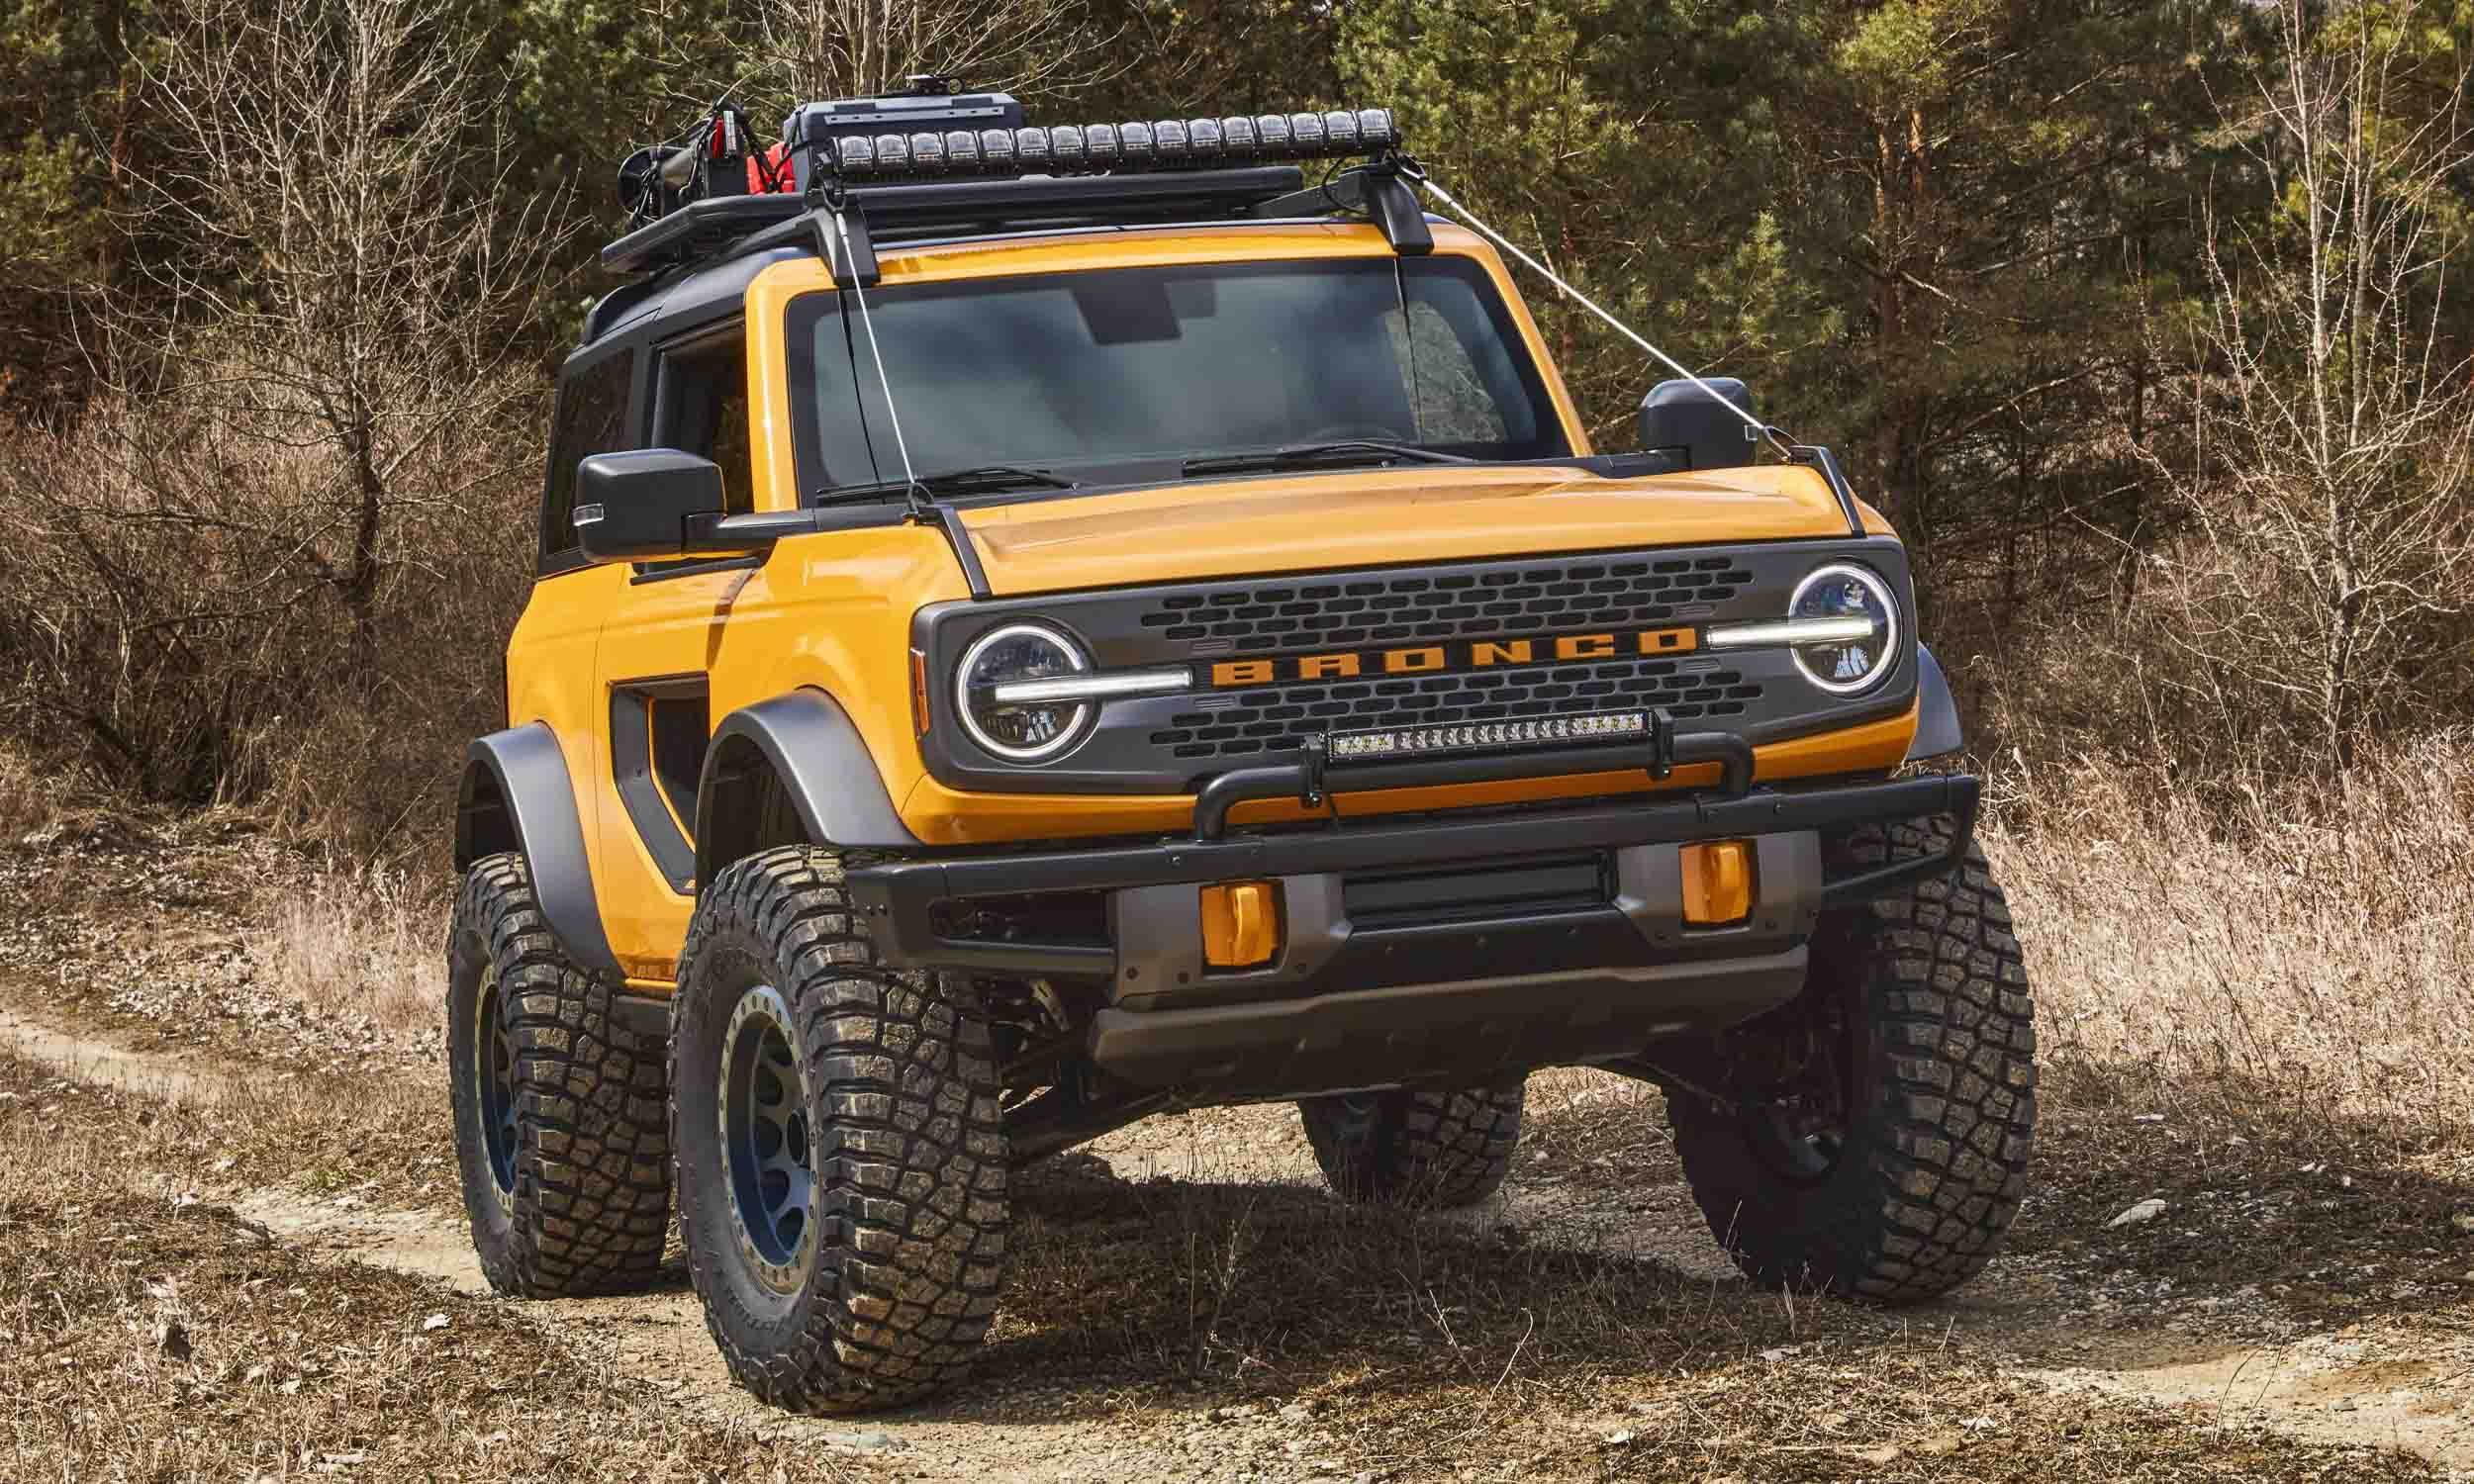 Ford Bronco Concepts Ready for OffRoad Adventurenbsp